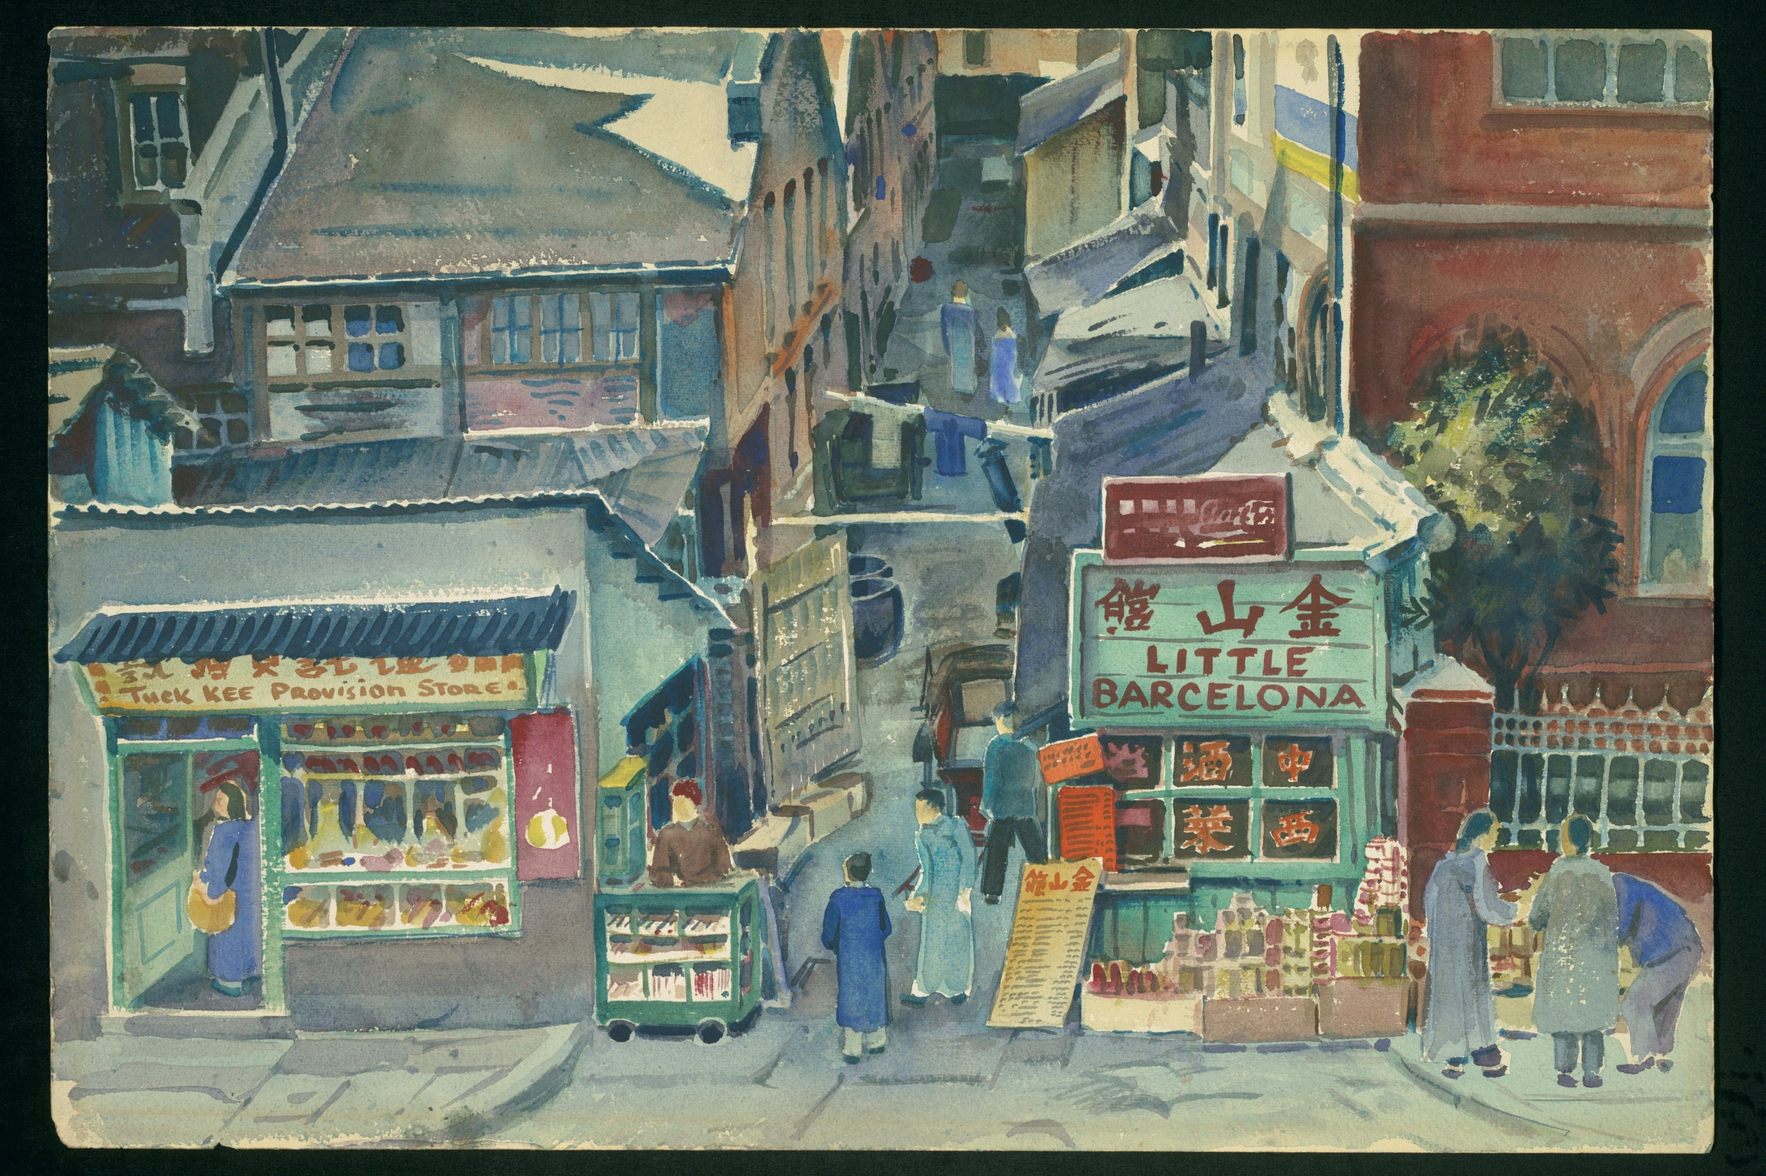 """David Ludwig Bloch, """"Shanghai, Street Scene, 1949"""", watercolor on paper. LBI Art & Objects Collection, 83.154."""